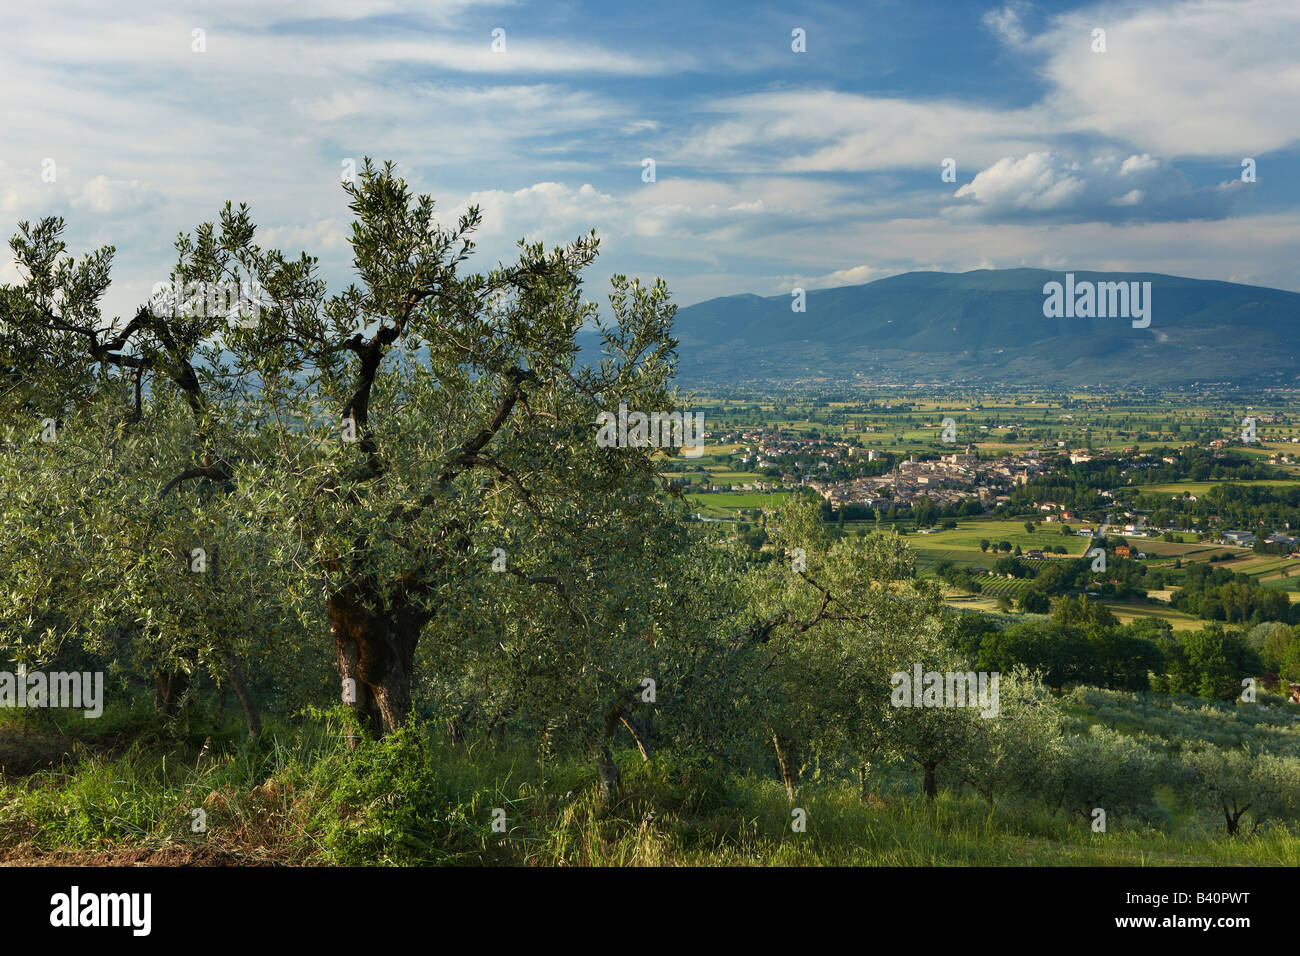 an olive grove overlooking Bevagna and the Val di Spoleto, Umbria, Italy - Stock Image